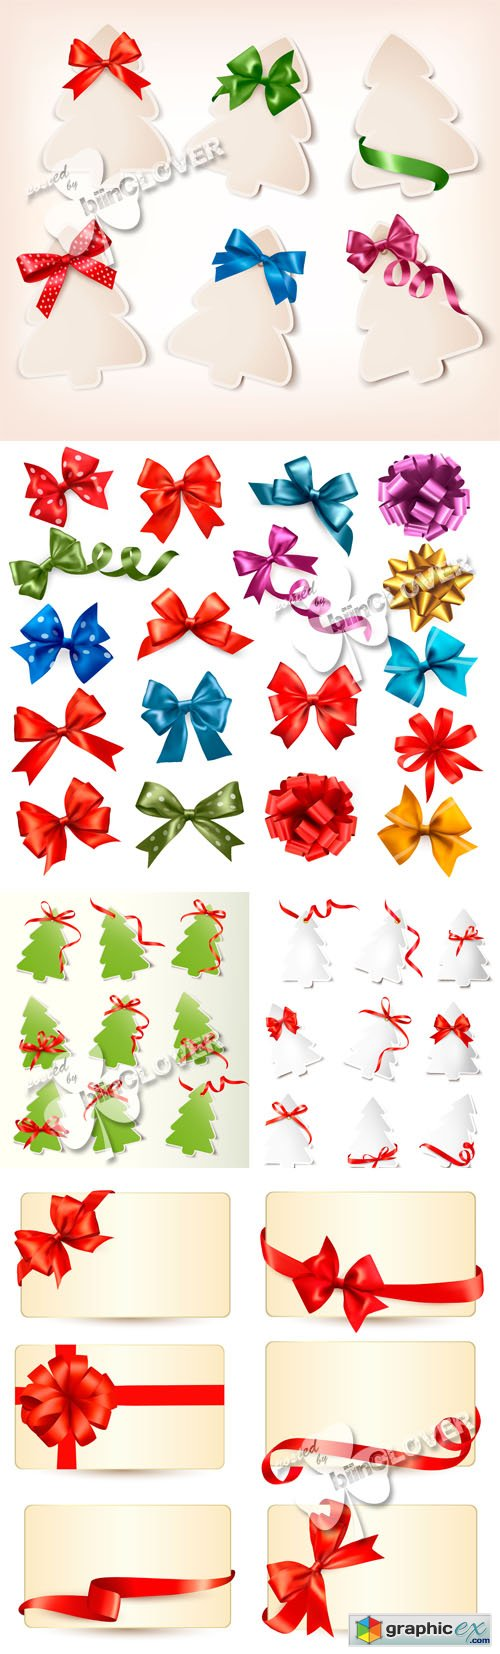 Vector Christmas gift cards with ribbons and bows 0521